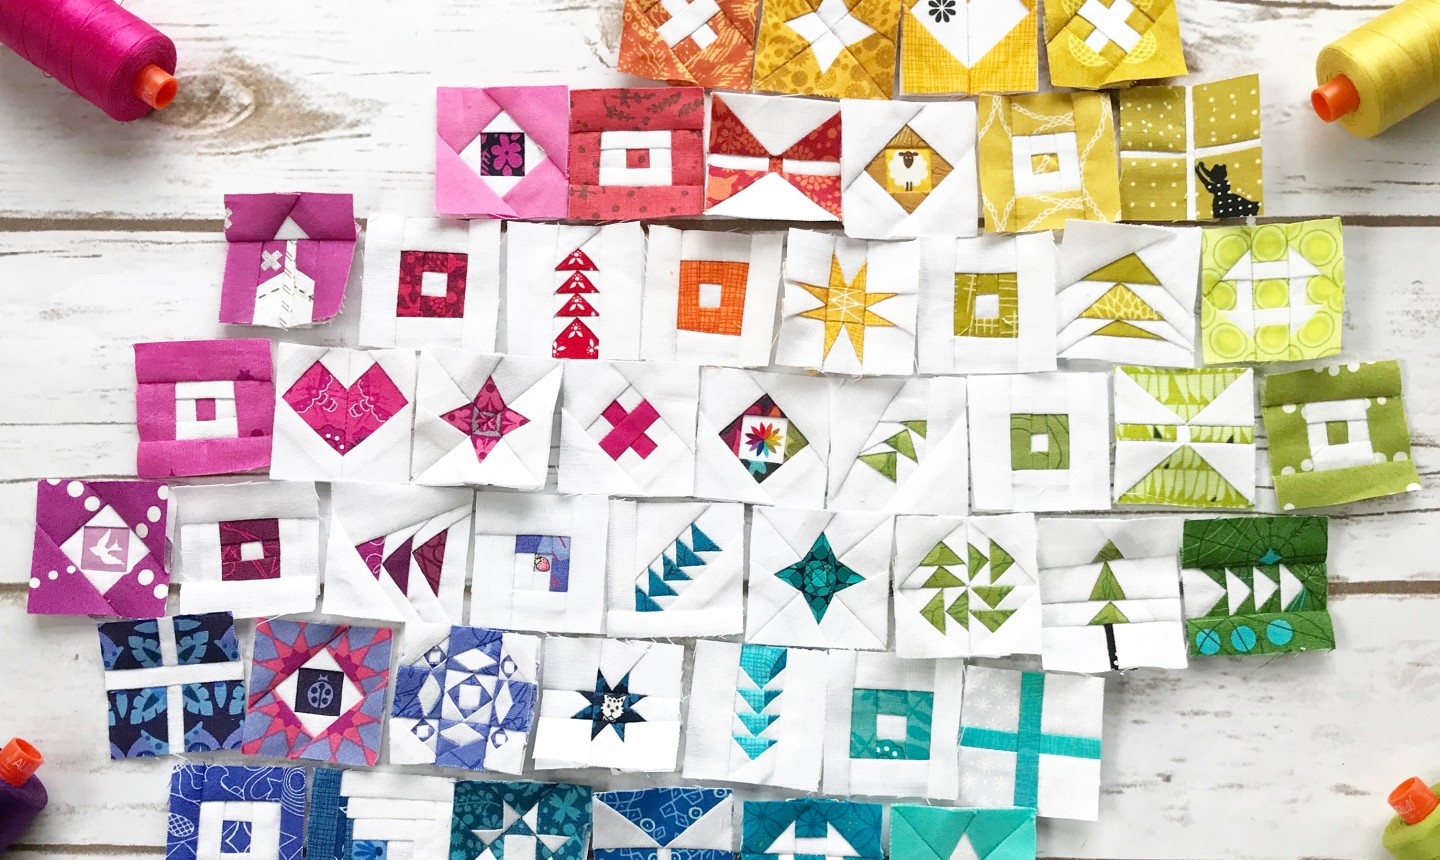 small quilt blocks placed together